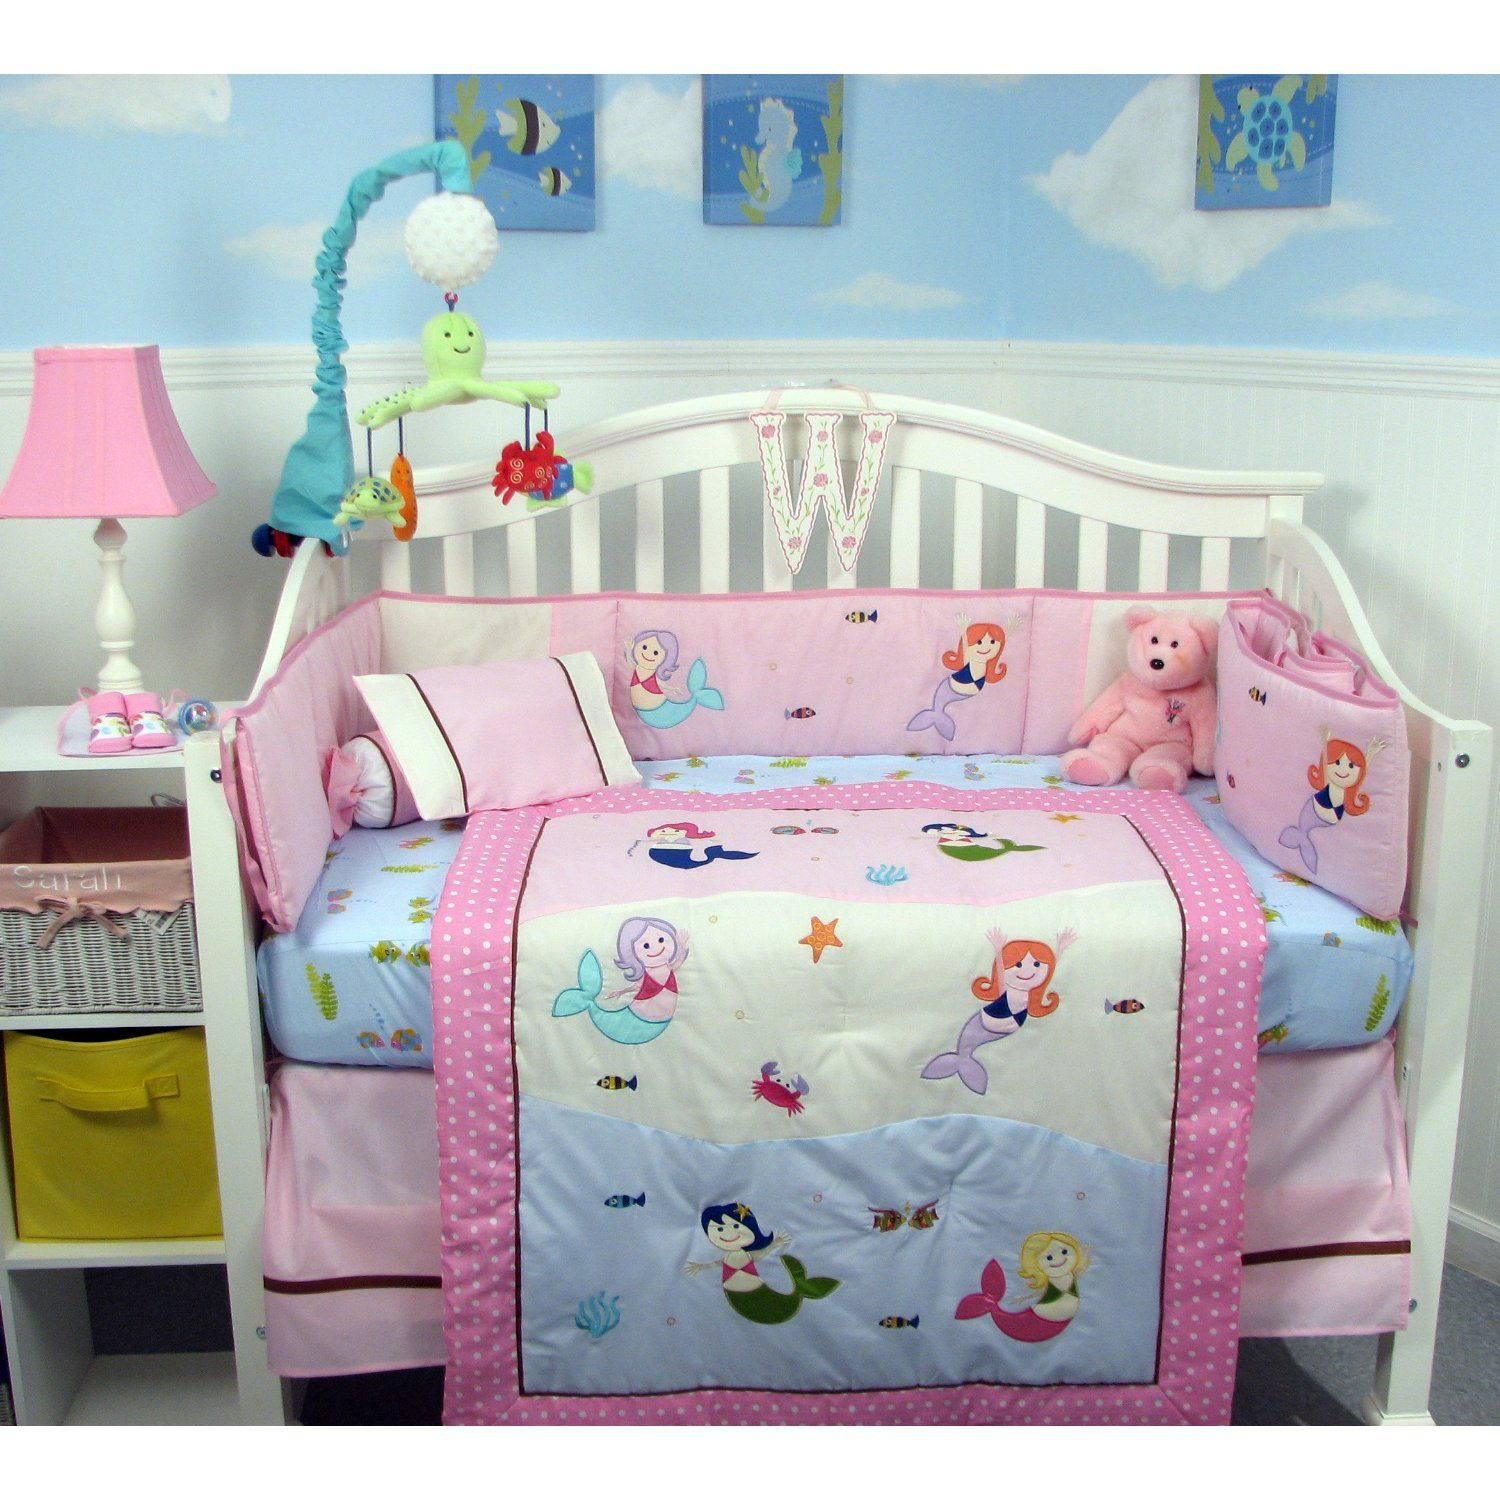 Mermaid Themed Baby Room May 2017